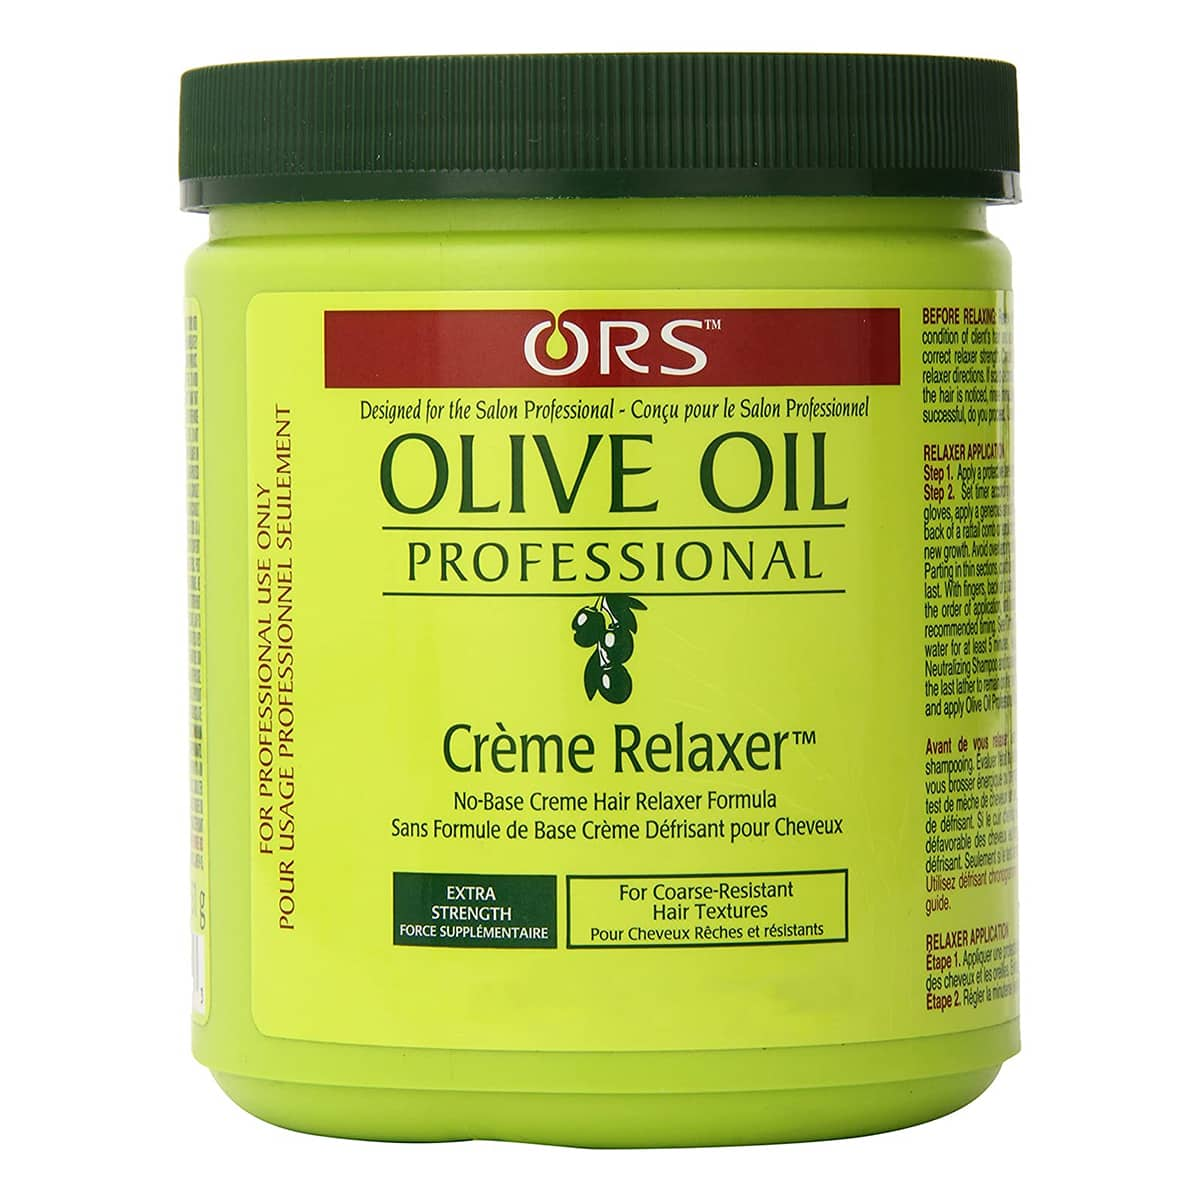 Buy Organic Root Stimulator (ORS) Olive Oil Professional Creme Relaxer Kit (Extra Strength)